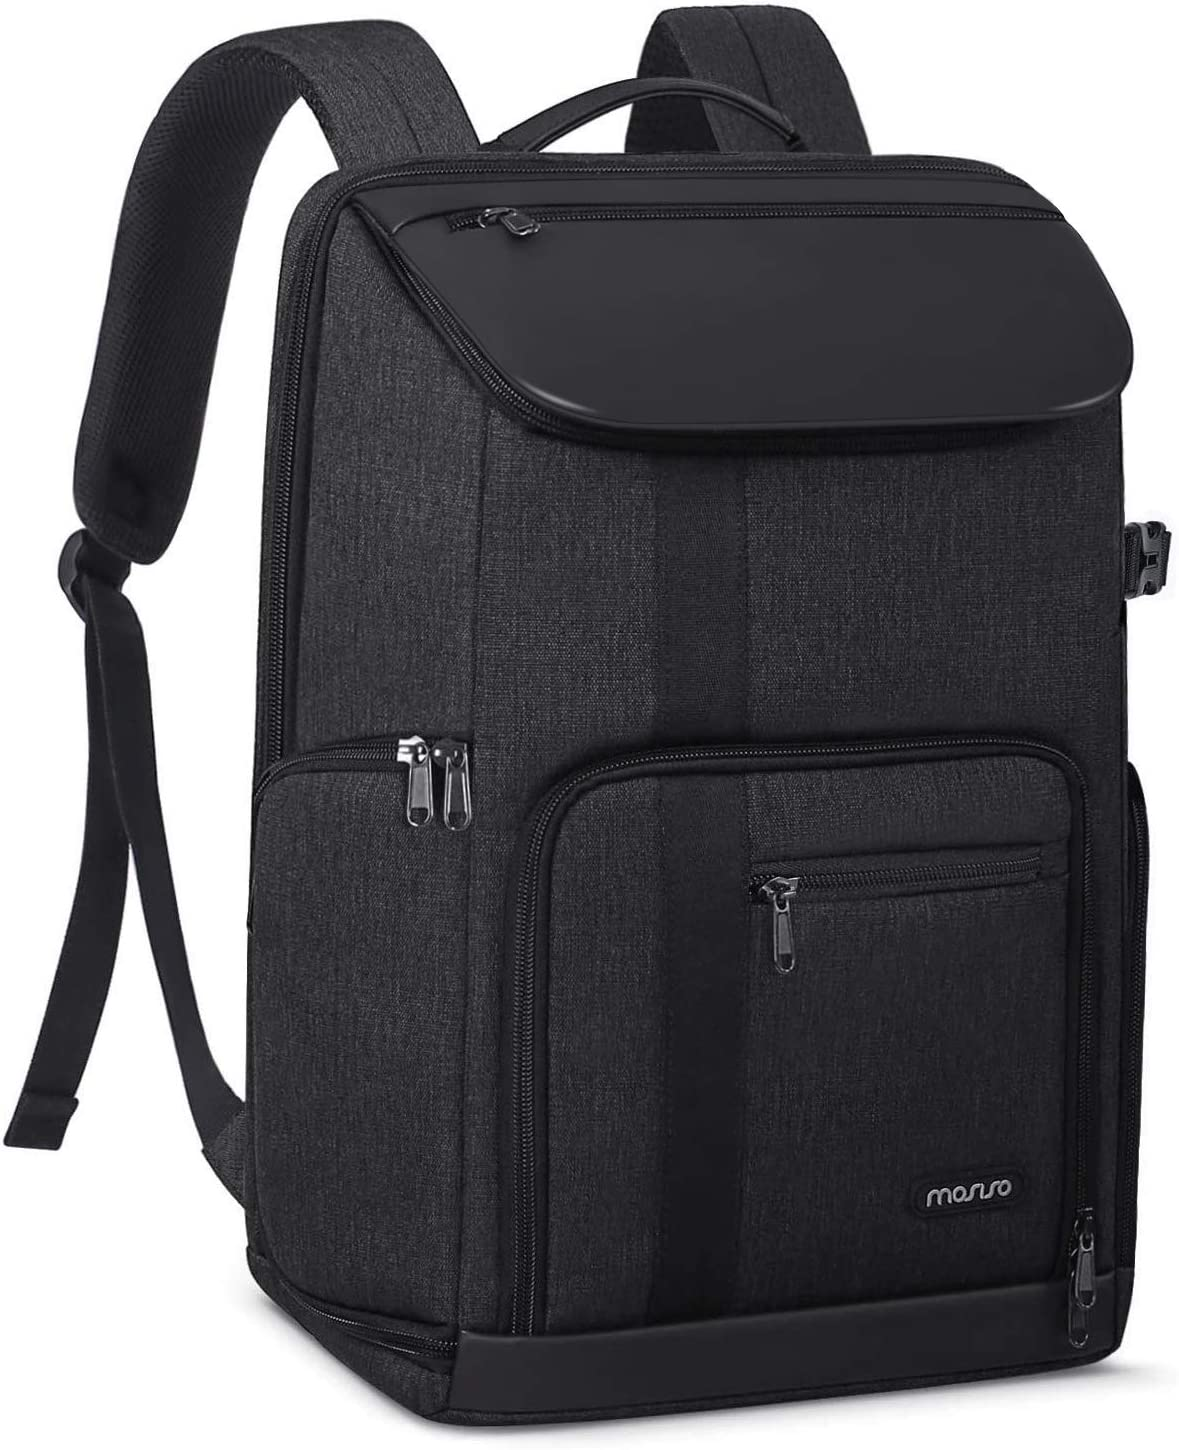 MOSISO Camera Backpack 17 inch, DSLR/SLR/Mirrorless Case Large Men/Women Photography Camera Bag with Laptop Compartment&Tripod Holder&Rain Cover Compatible with Canon/Nikon/Fuji/MacBook, Space Gray